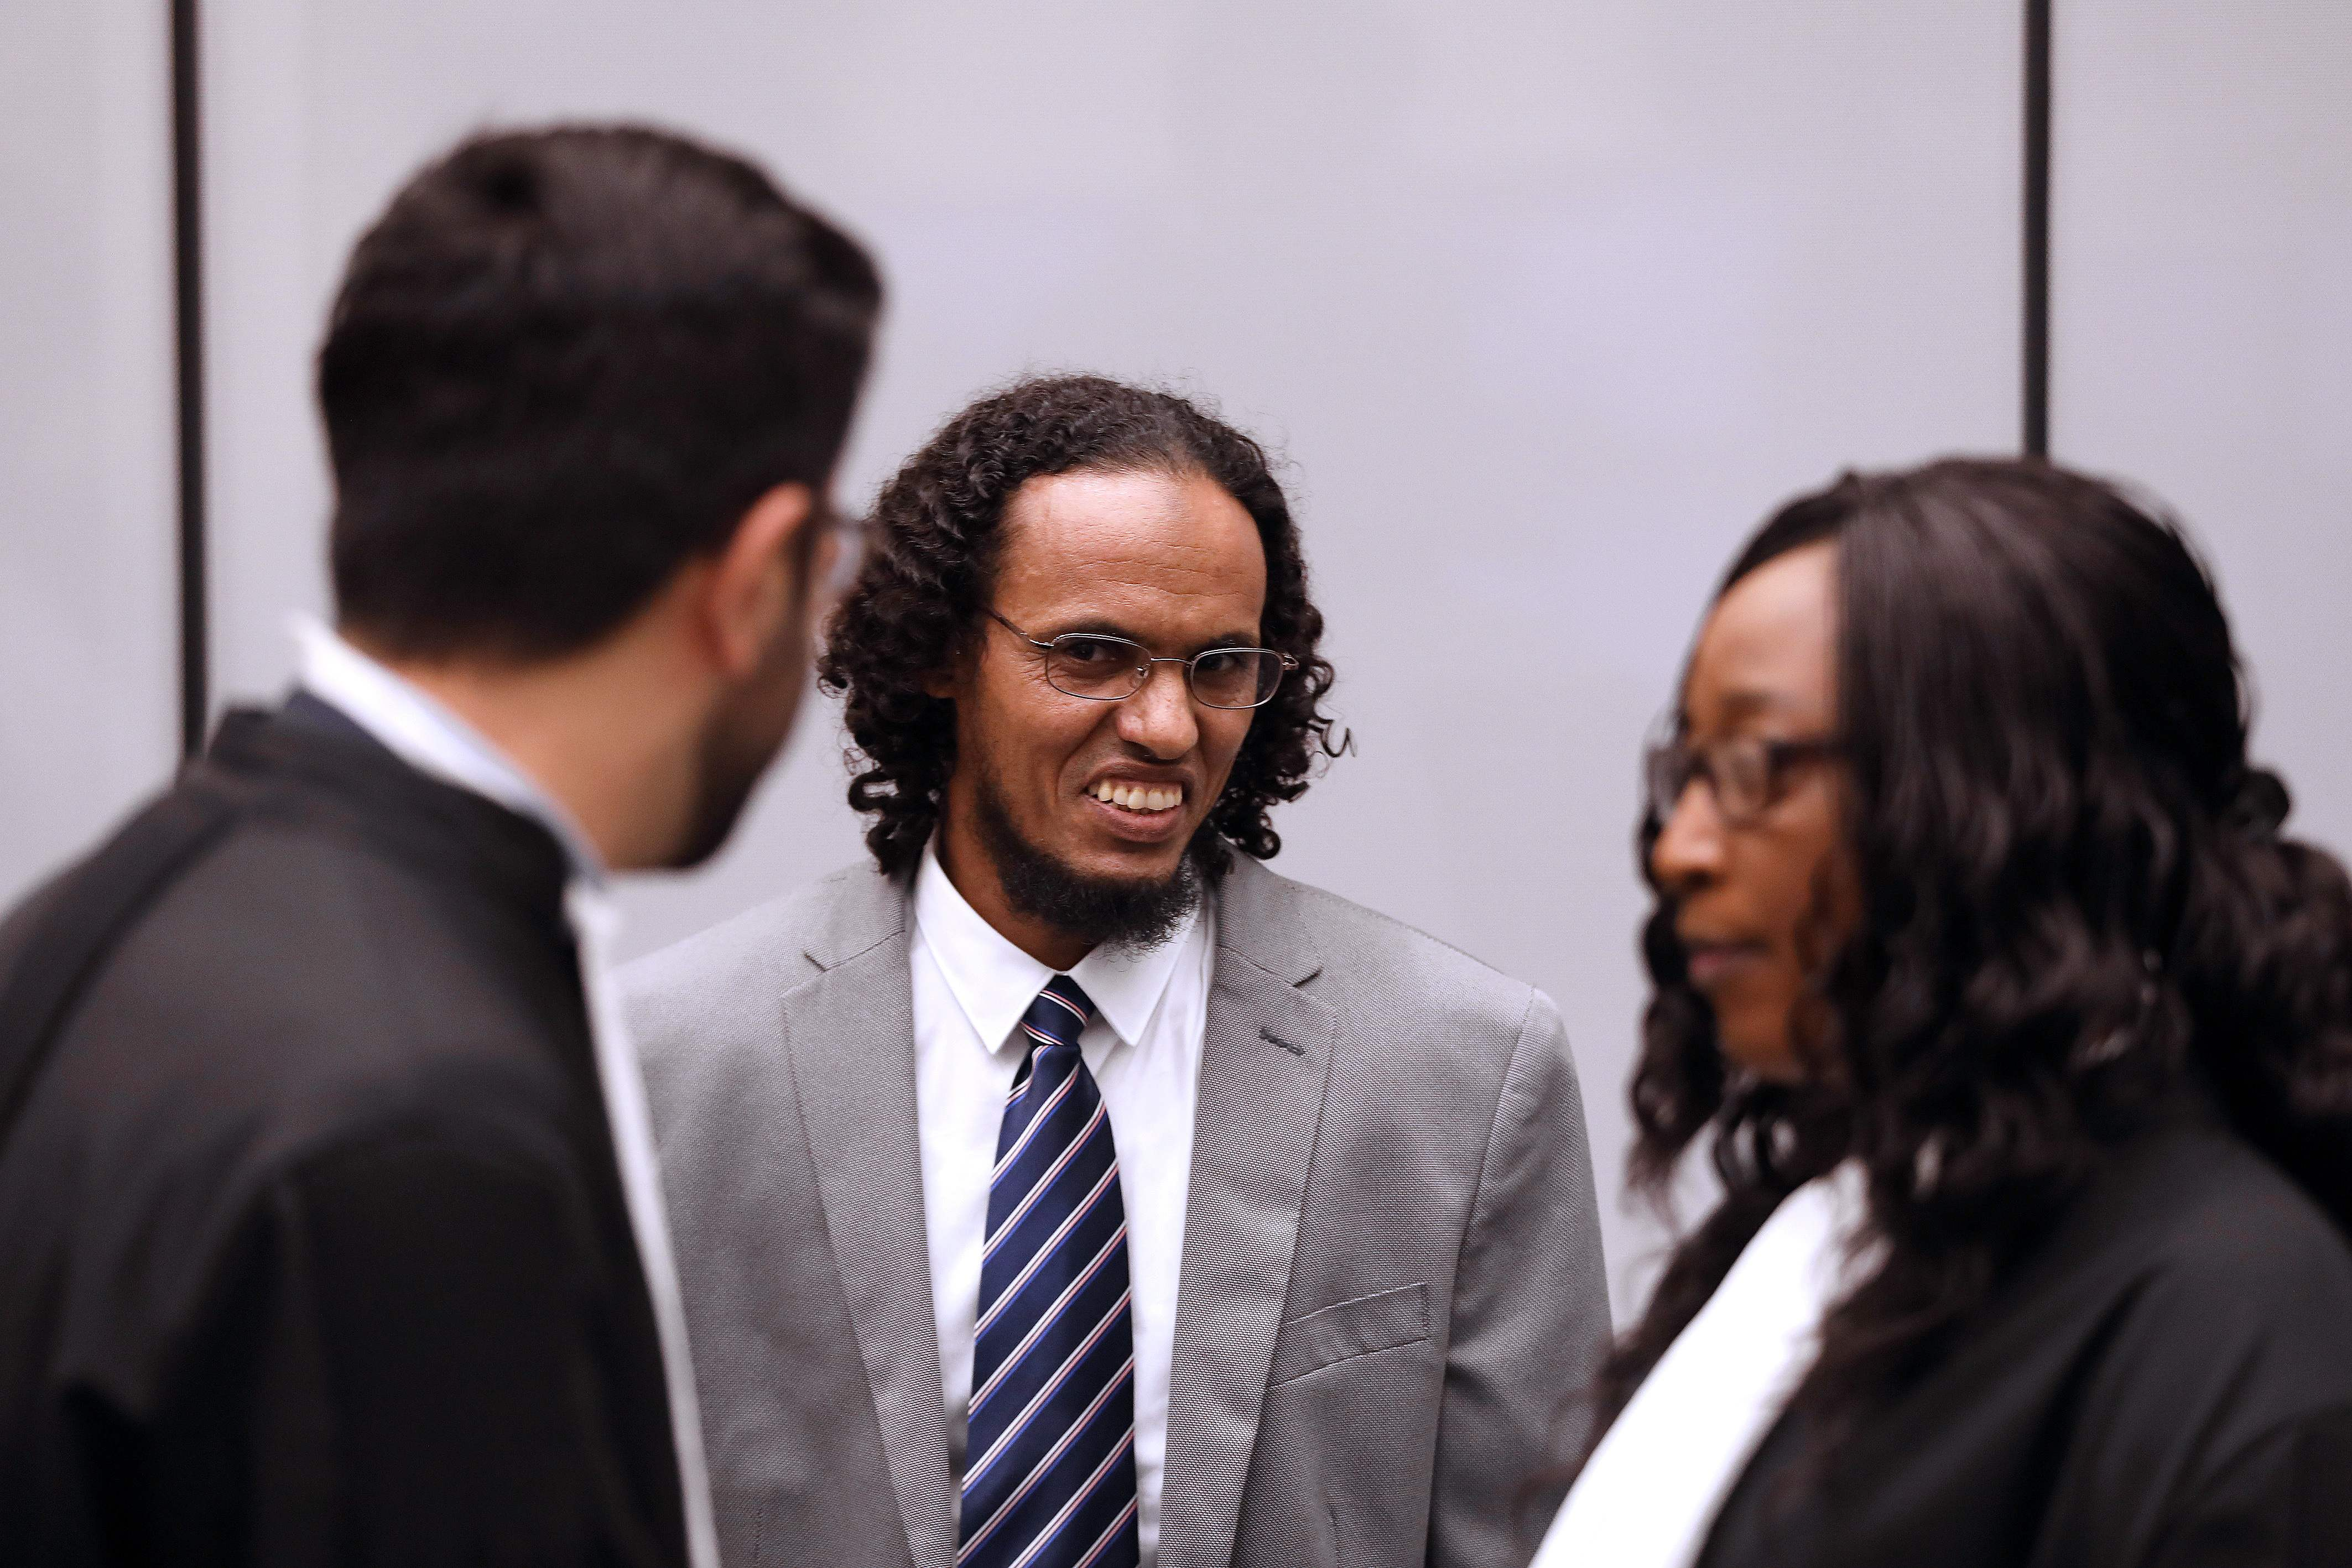 Malian jihadi Ahmad al-Faqi al-Mahdi reacts at the International Criminal Court (ICC) in The Hague on Tuesday during his sentencing for destroying Timbuktu's shrines. Mahdi was sentenced to nine years in jail for destroying the shrines, after he was found guilty of directing the 2012 attacks on the UNESCO world heritage site in northern Mali. | BAS CZERWINSKI / ANP / AFP-JIJI